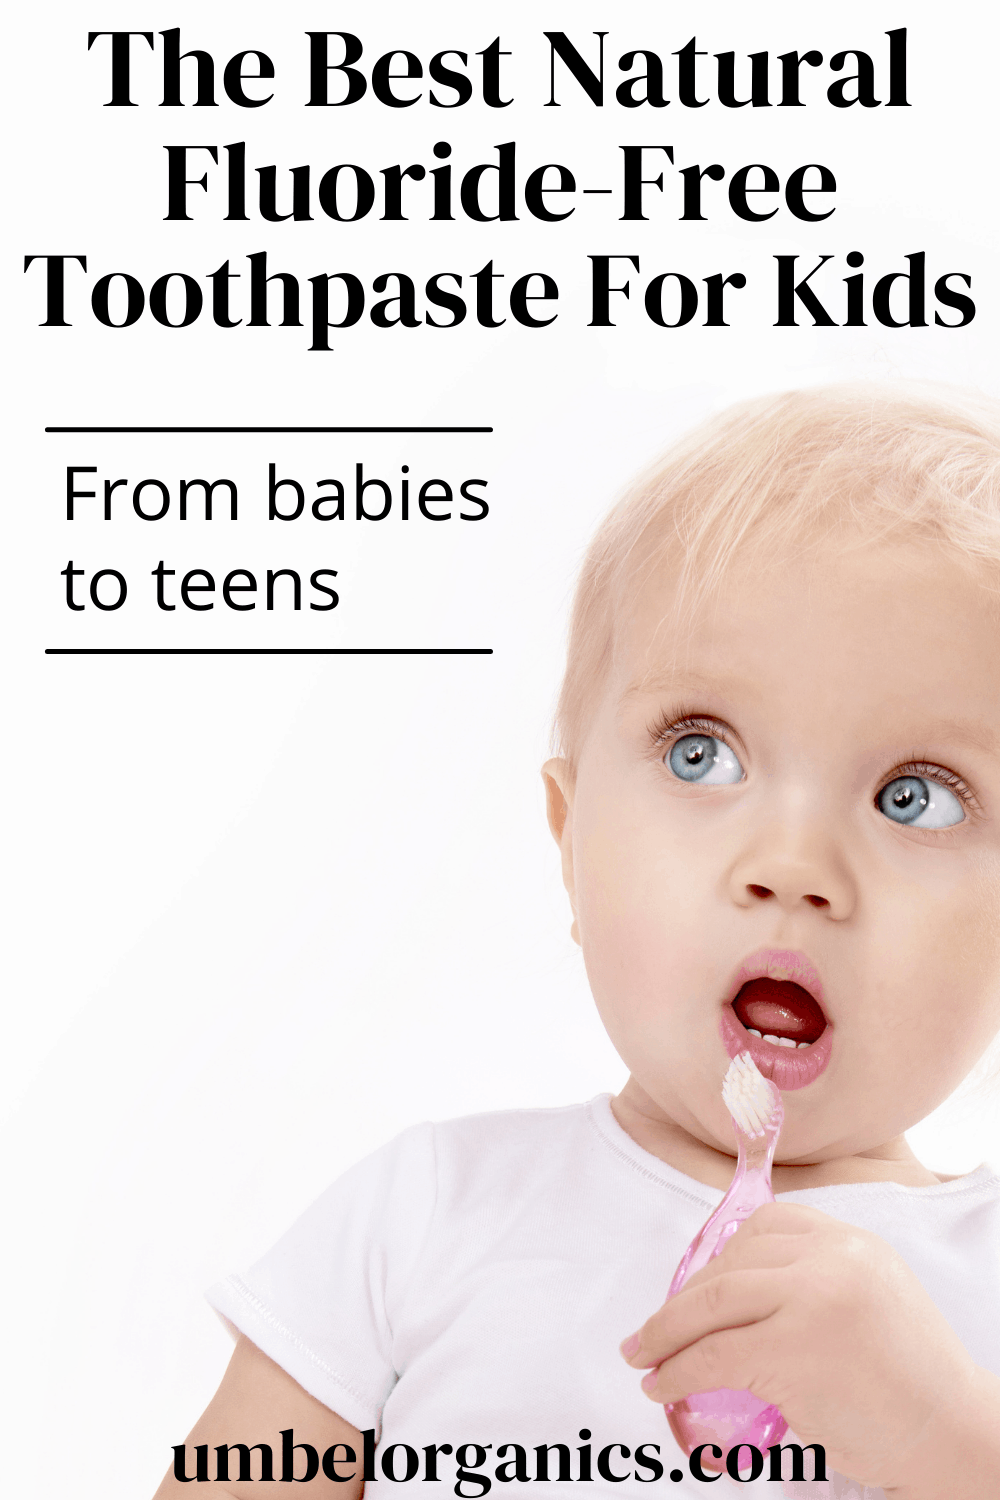 Blond baby holding pink toothbrush up to mouth